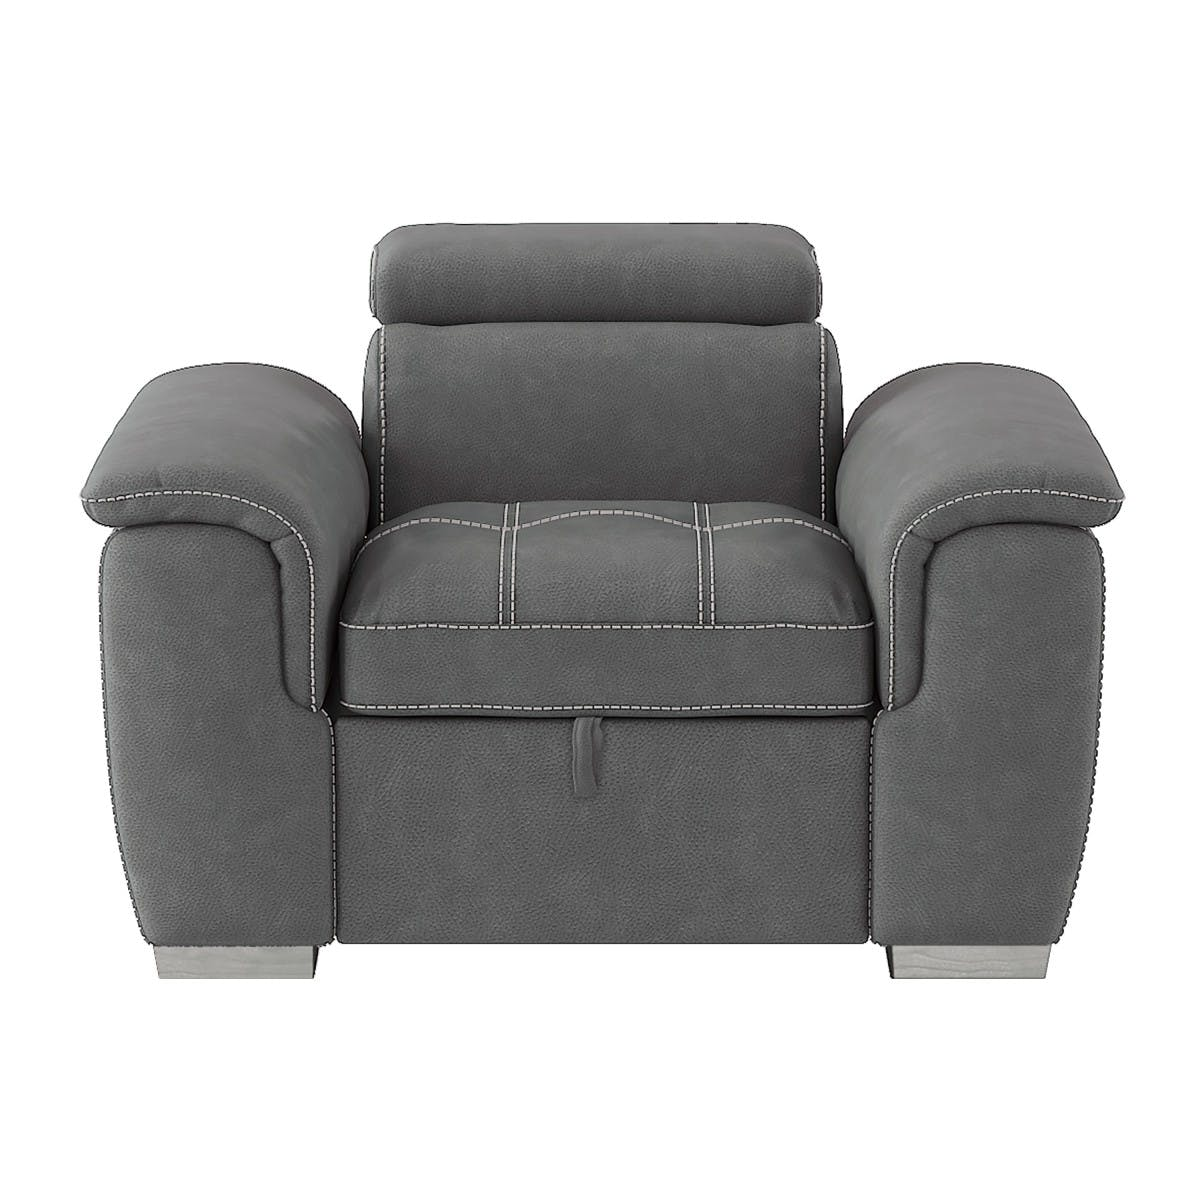 Picture of: Homelegance Living Room Chair With Pull Out Ottoman 8228gy 1 Evans Furniture Galleries Chico